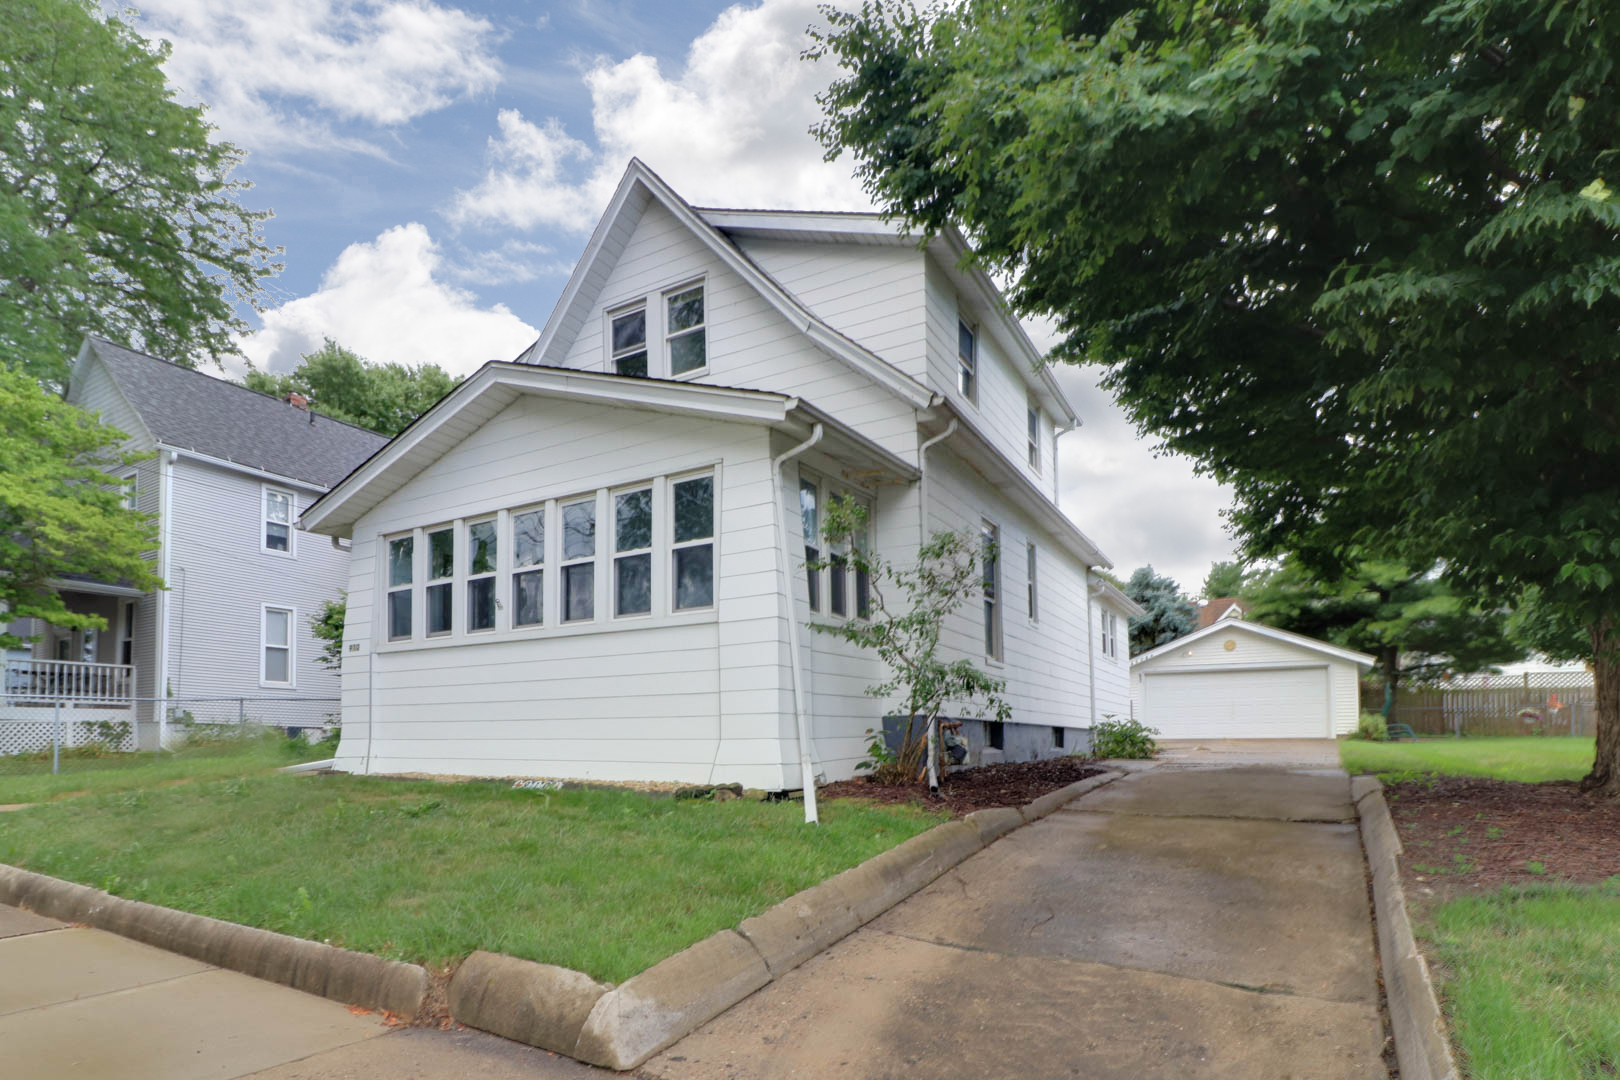 910 W Oakland Ave, Bloomington, IL 61701- UNDER CONTRACT